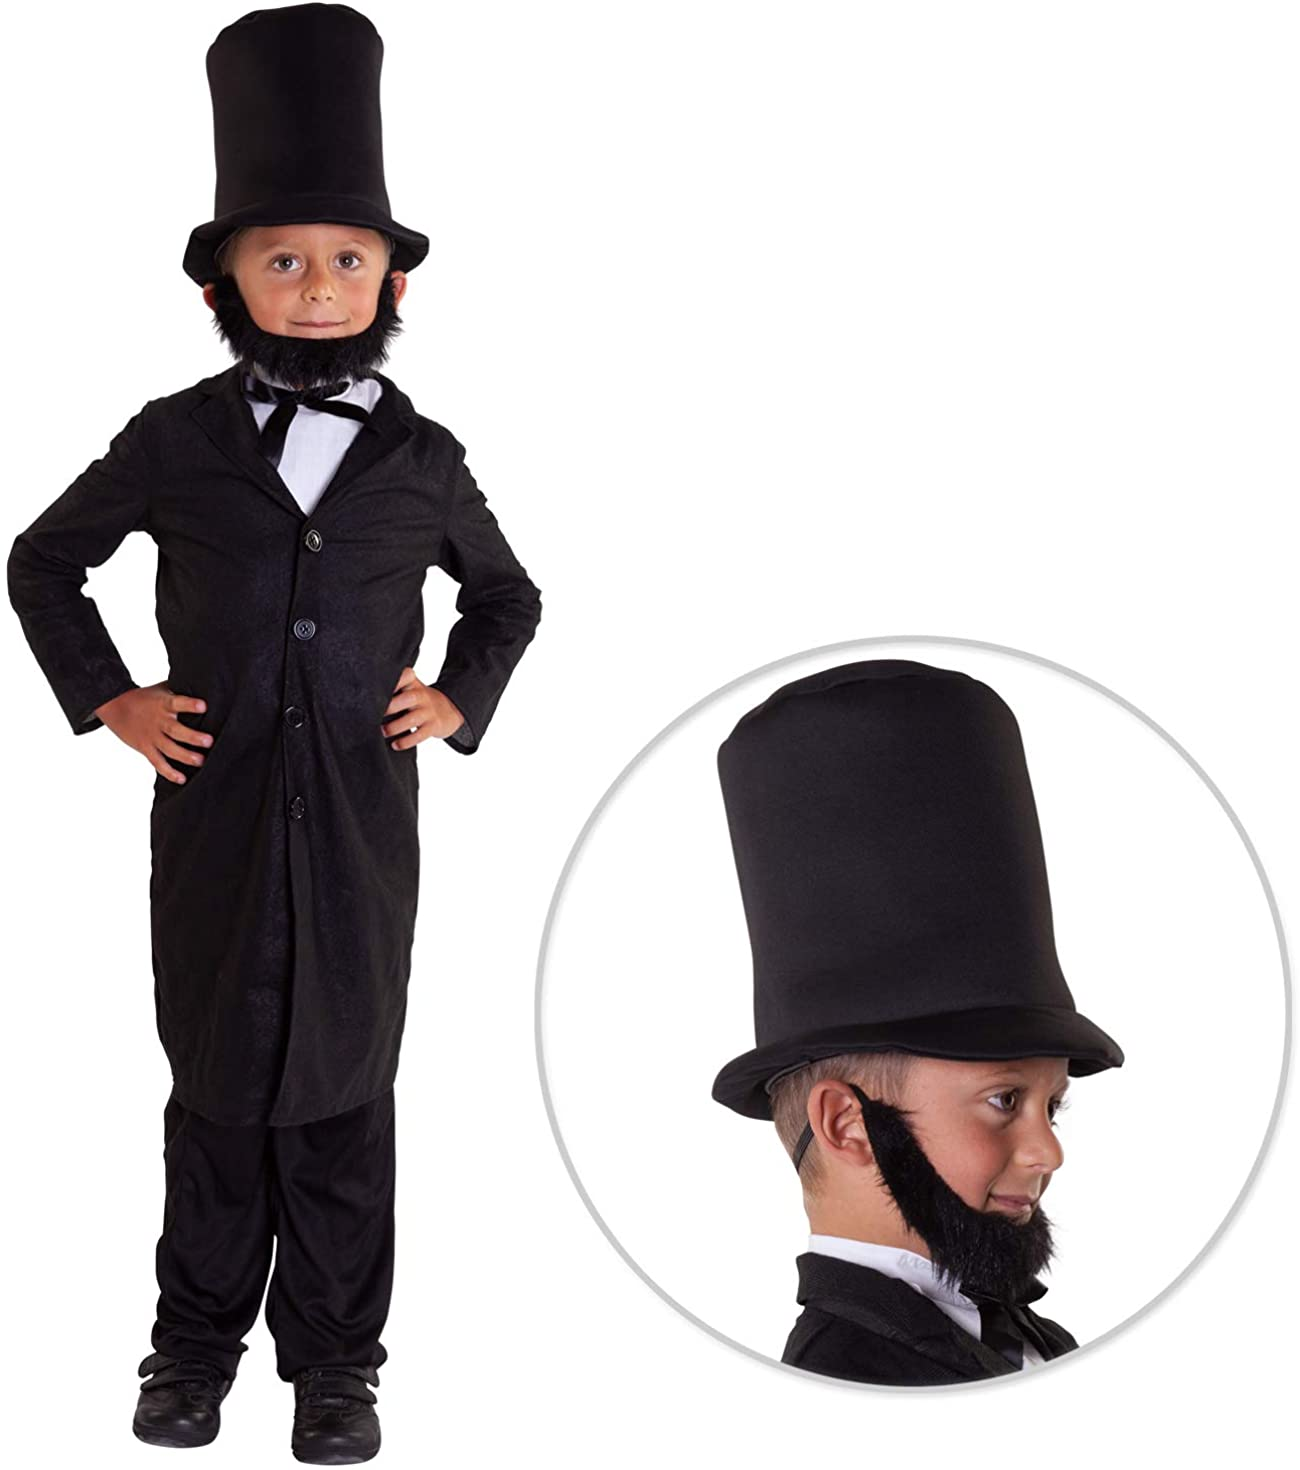 Kids President Costumes Abraham Lincoln Costume George Washington Childs Outfit